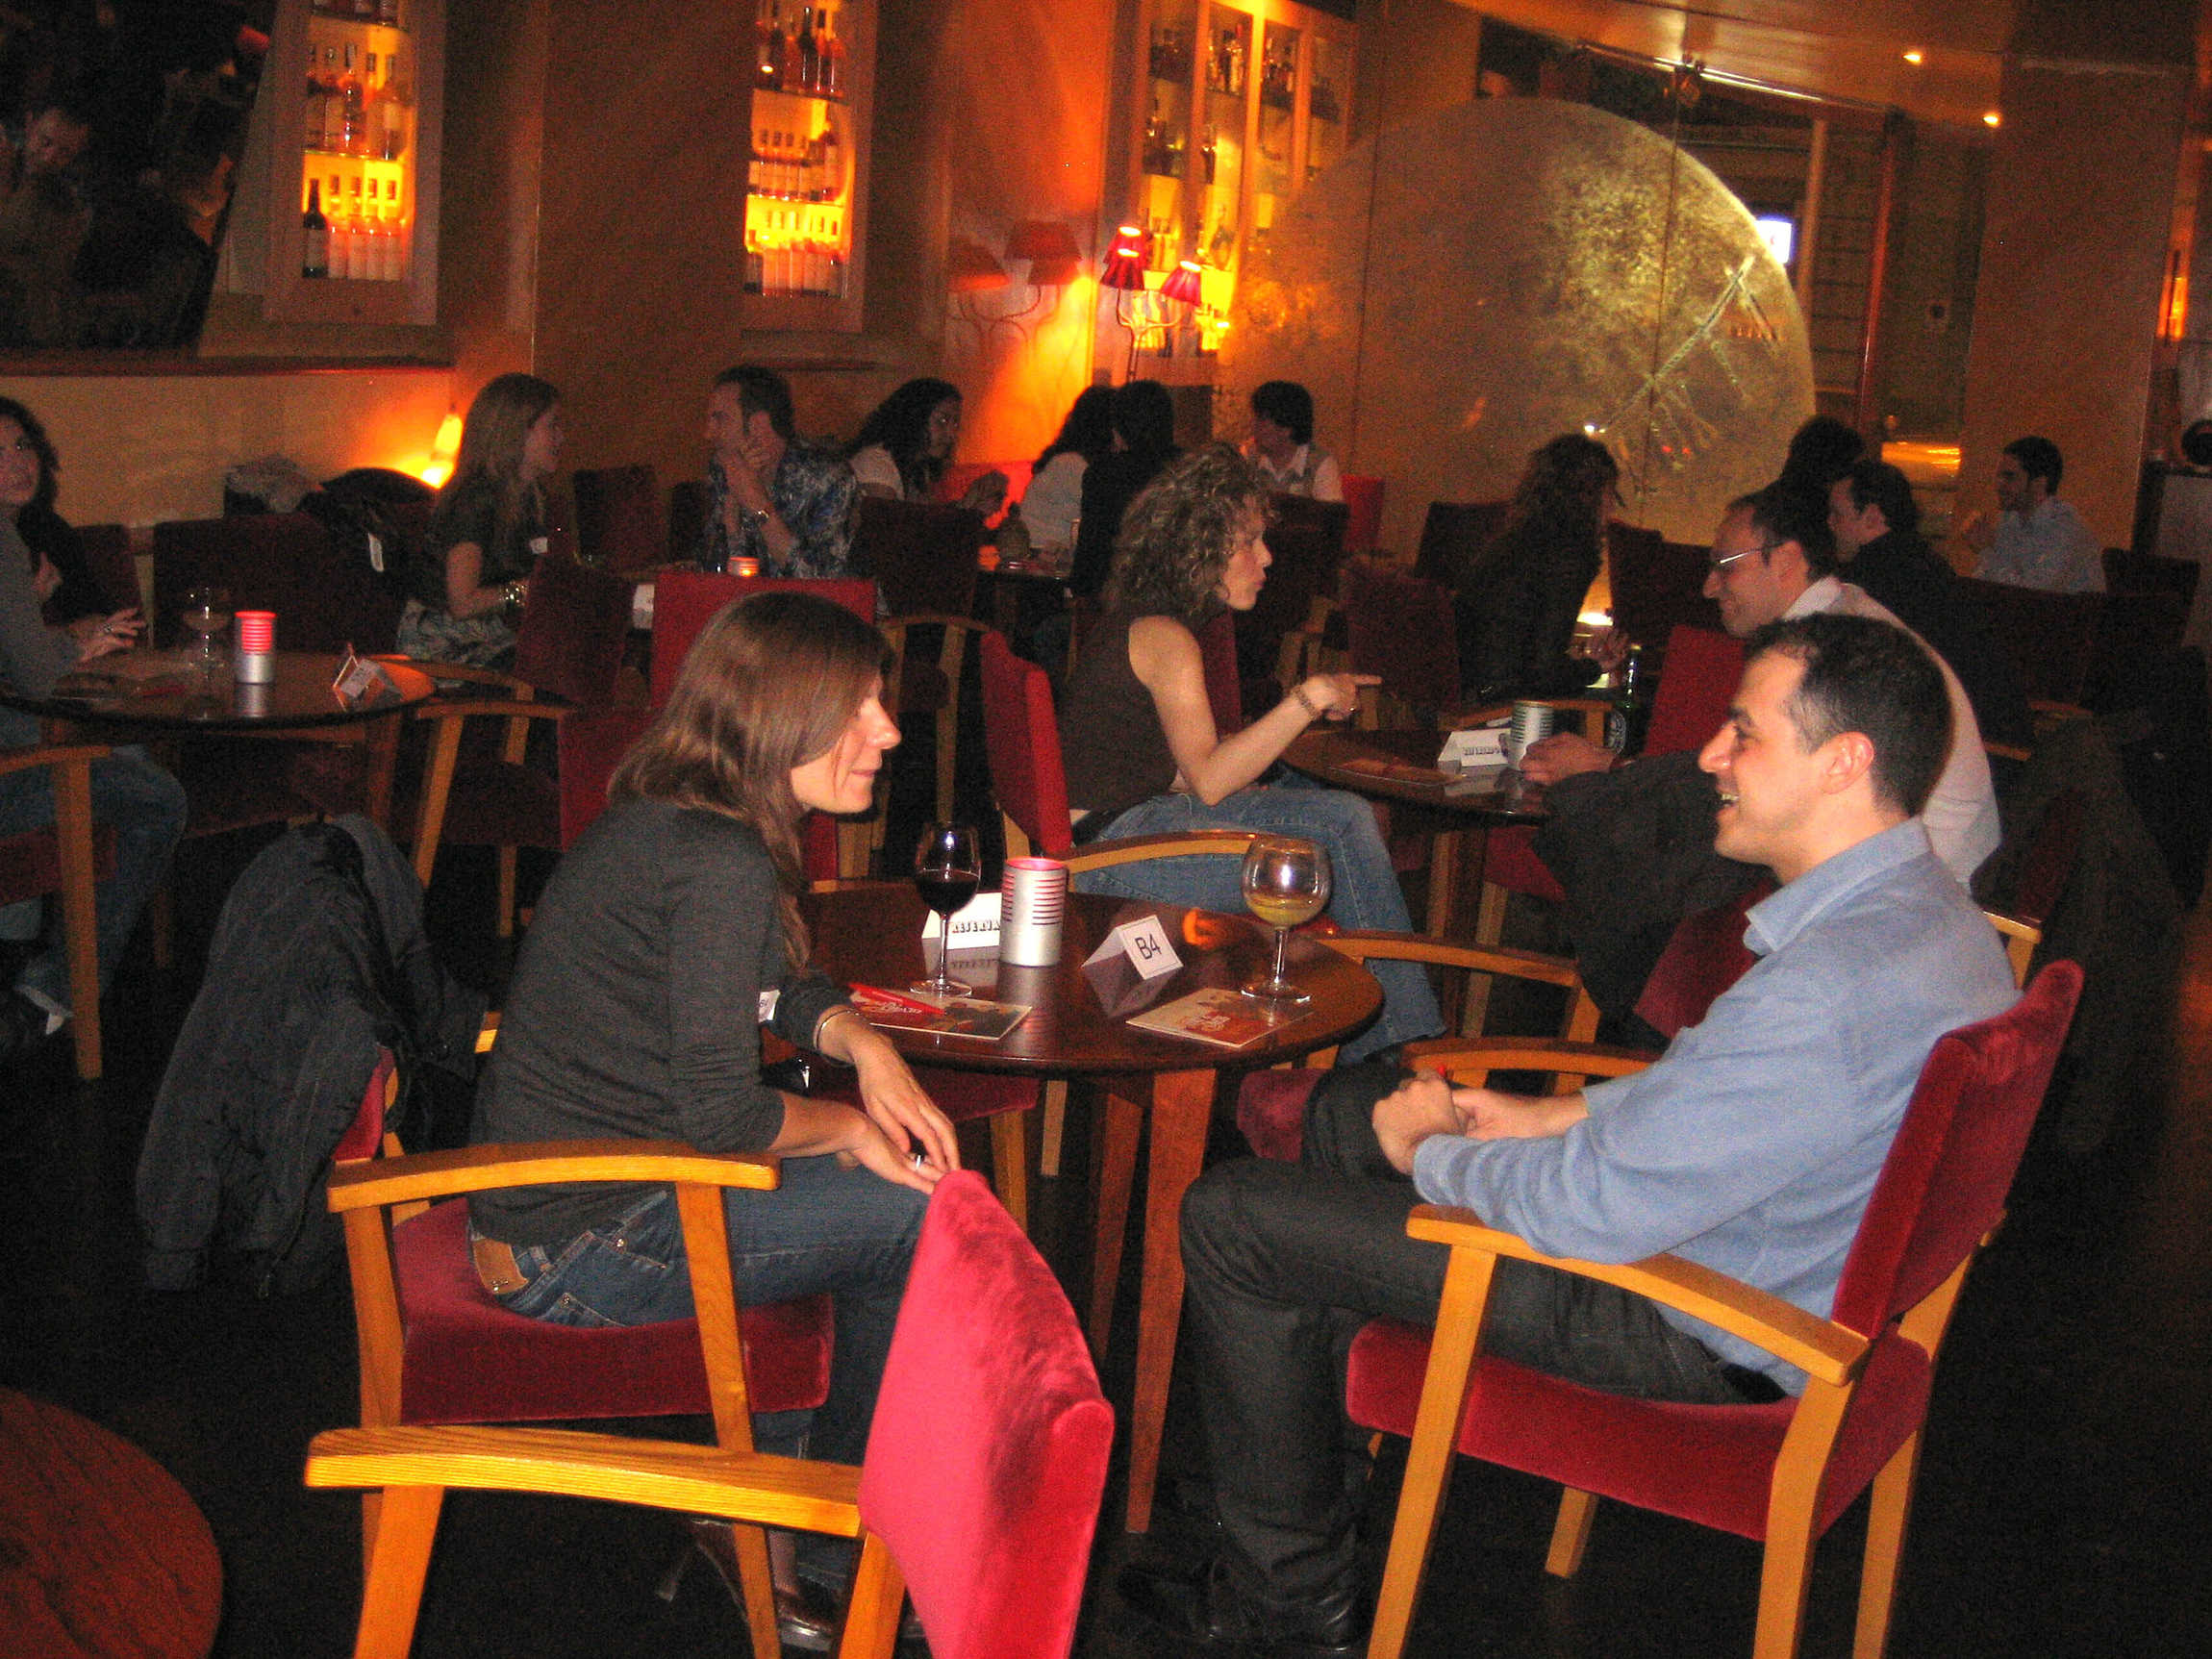 madrid speed dating events Speed dating events michigan - register and search over 40 million singles: chat rich man looking for older man & younger man i'm laid back and get along with everyone.